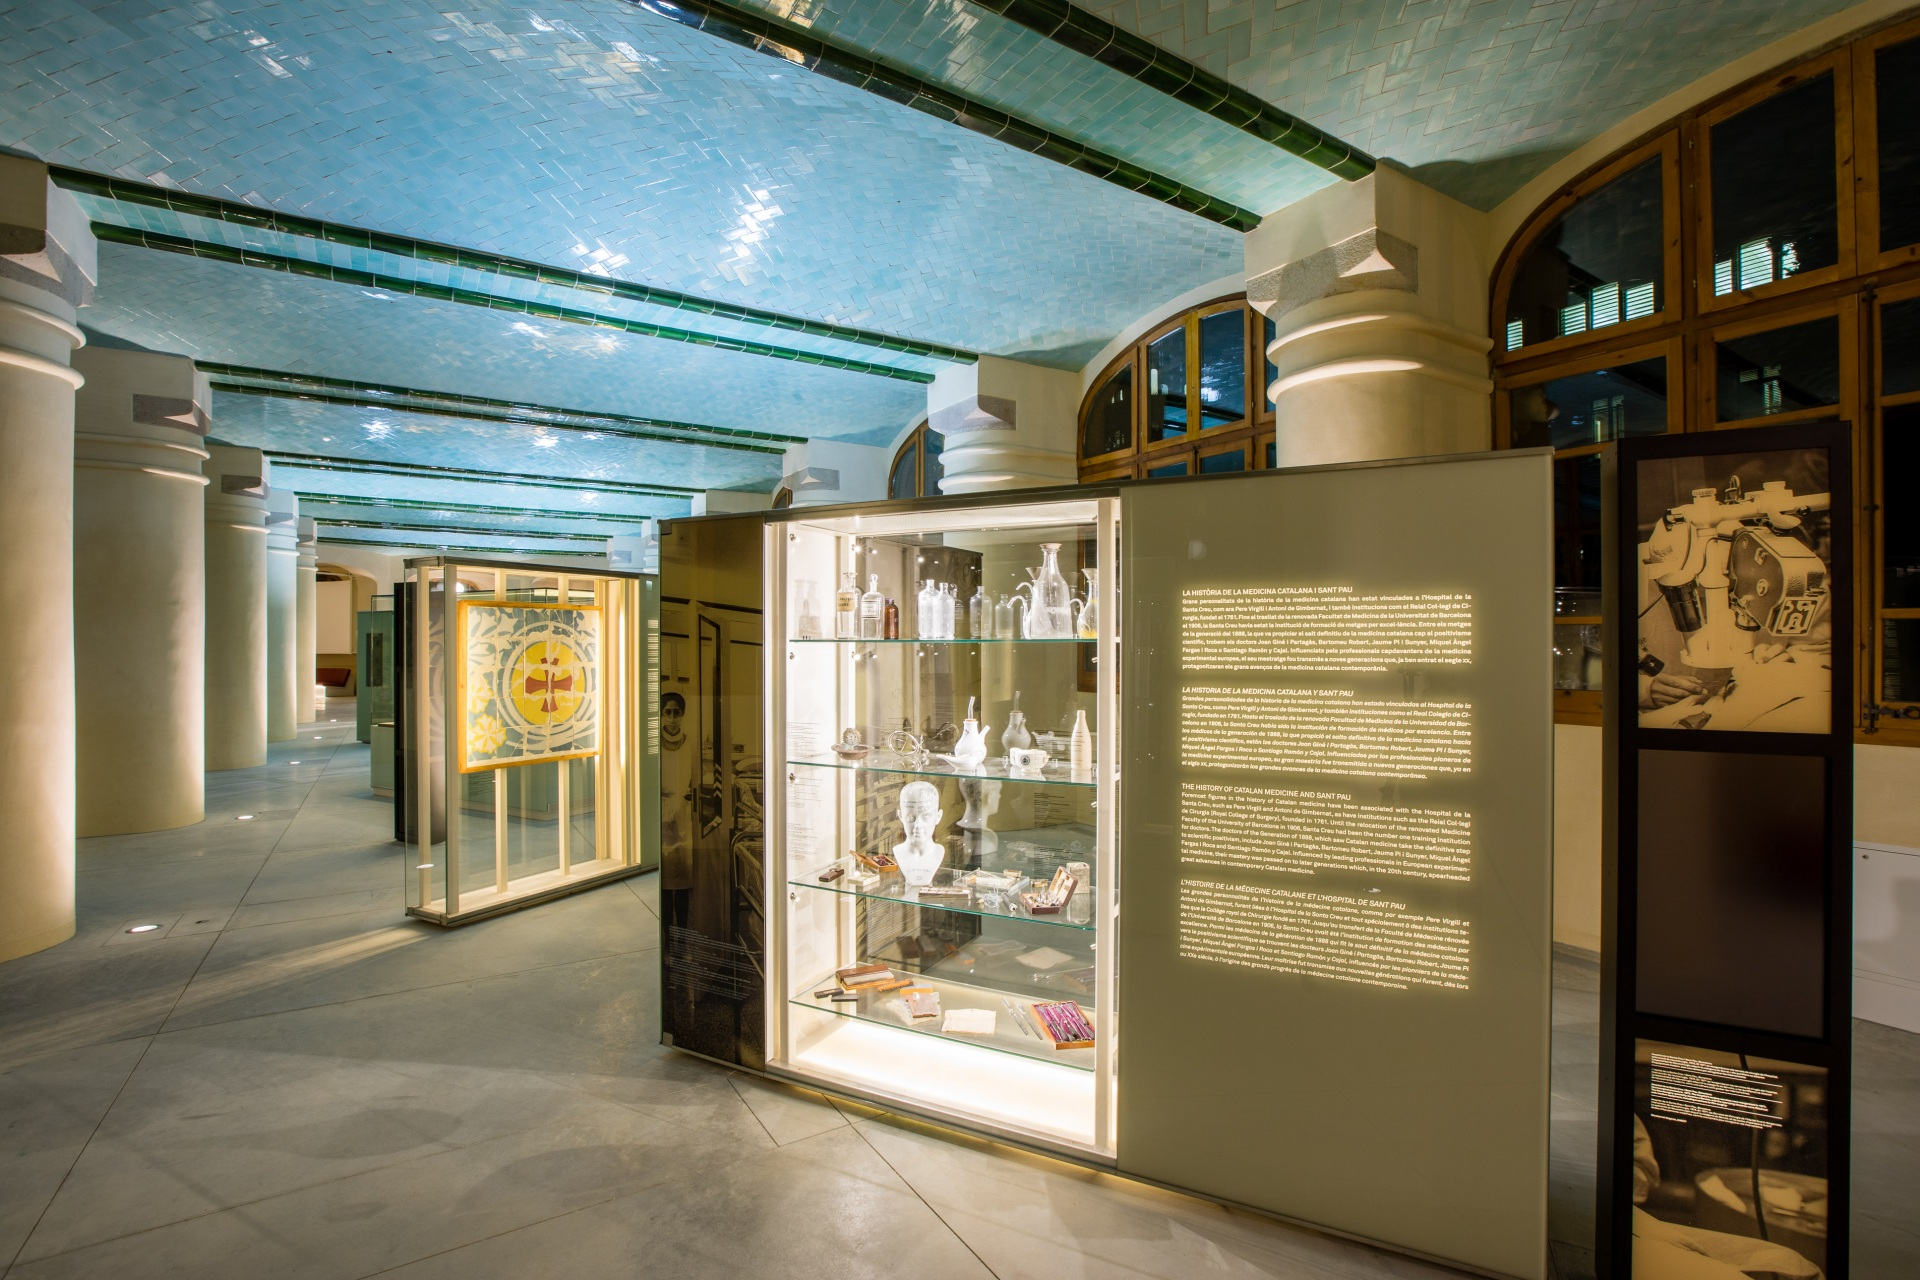 Hospital of the Santa Creu i Sant Pau. Showcases with medicine objects and old pictures.